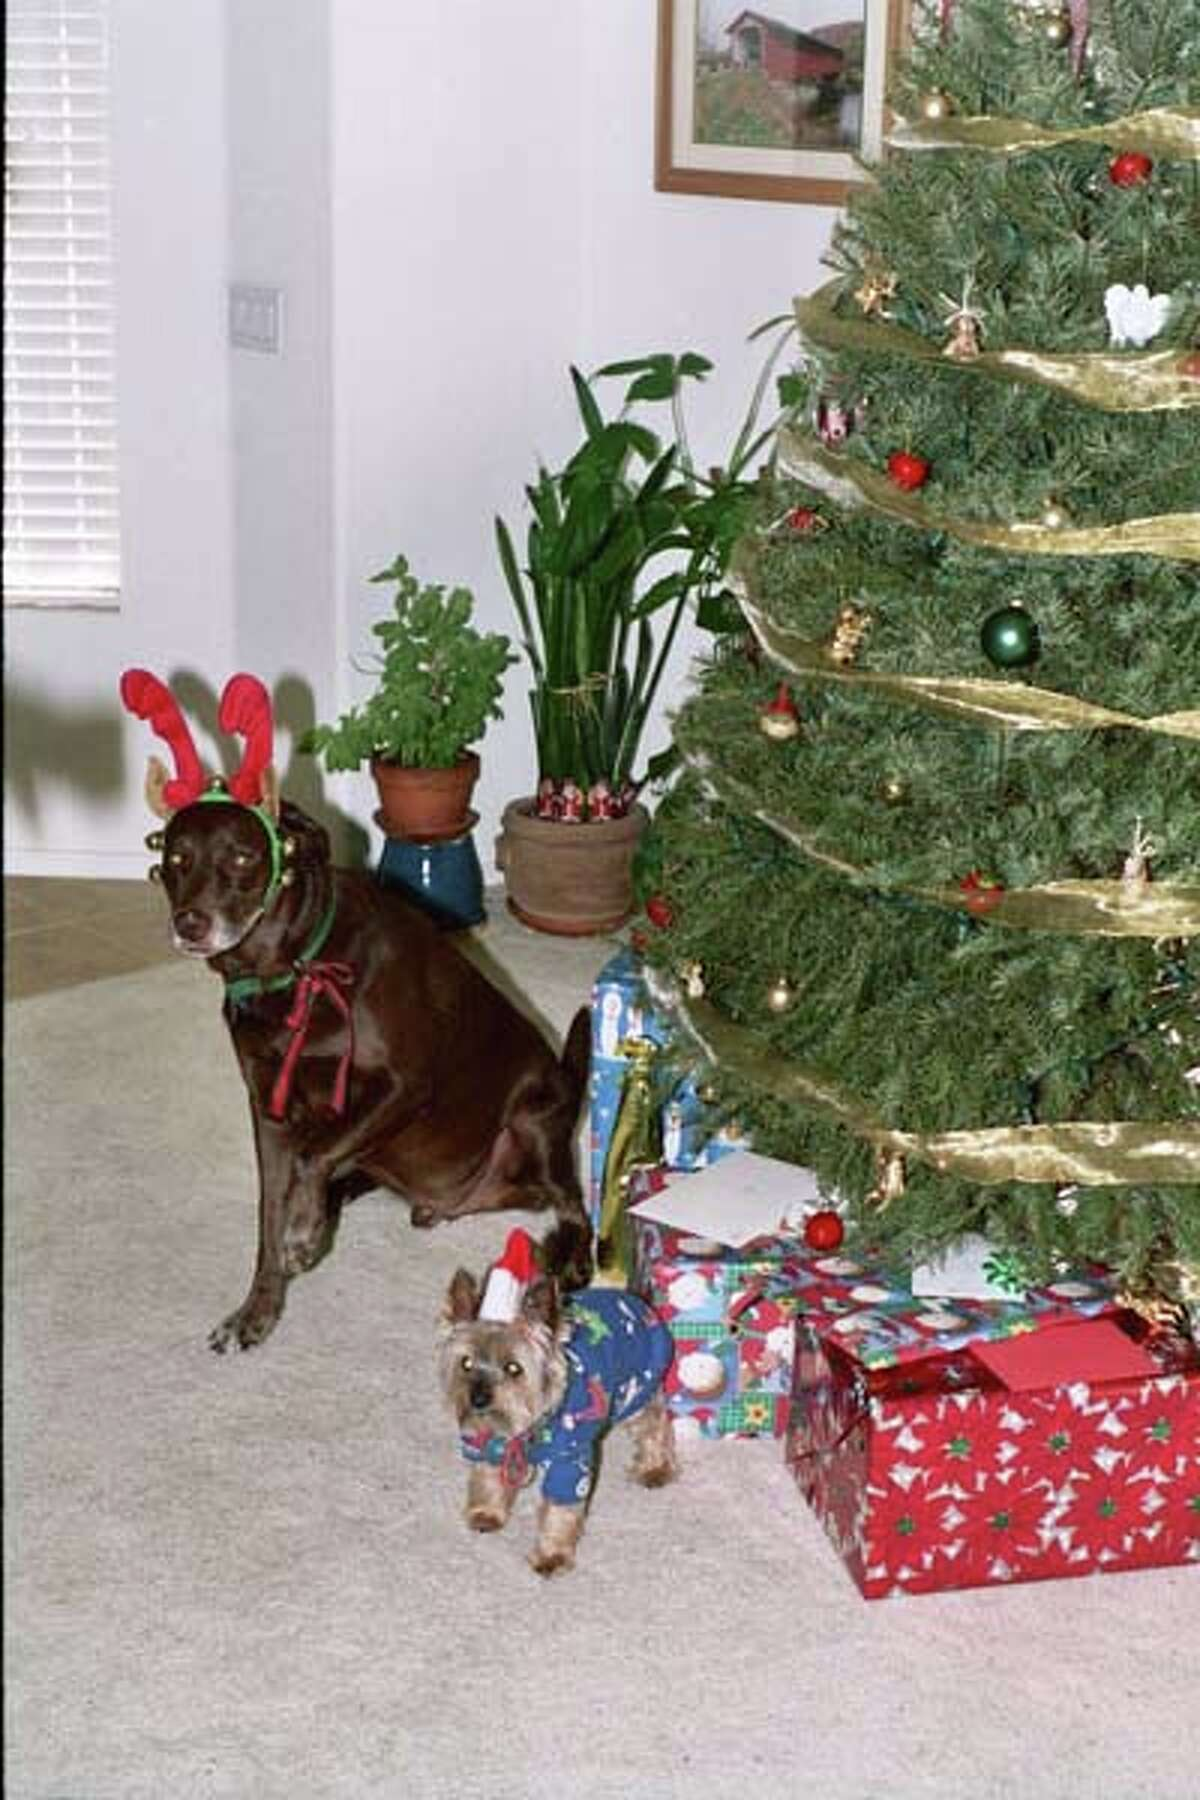 No. 2 - Virginia Rizzari In this photo Buddy and Bam Bam are celebrating Christmas 2004. They are now in Doggie Heaven and are dearly missed. They were quite the entertaining pair!